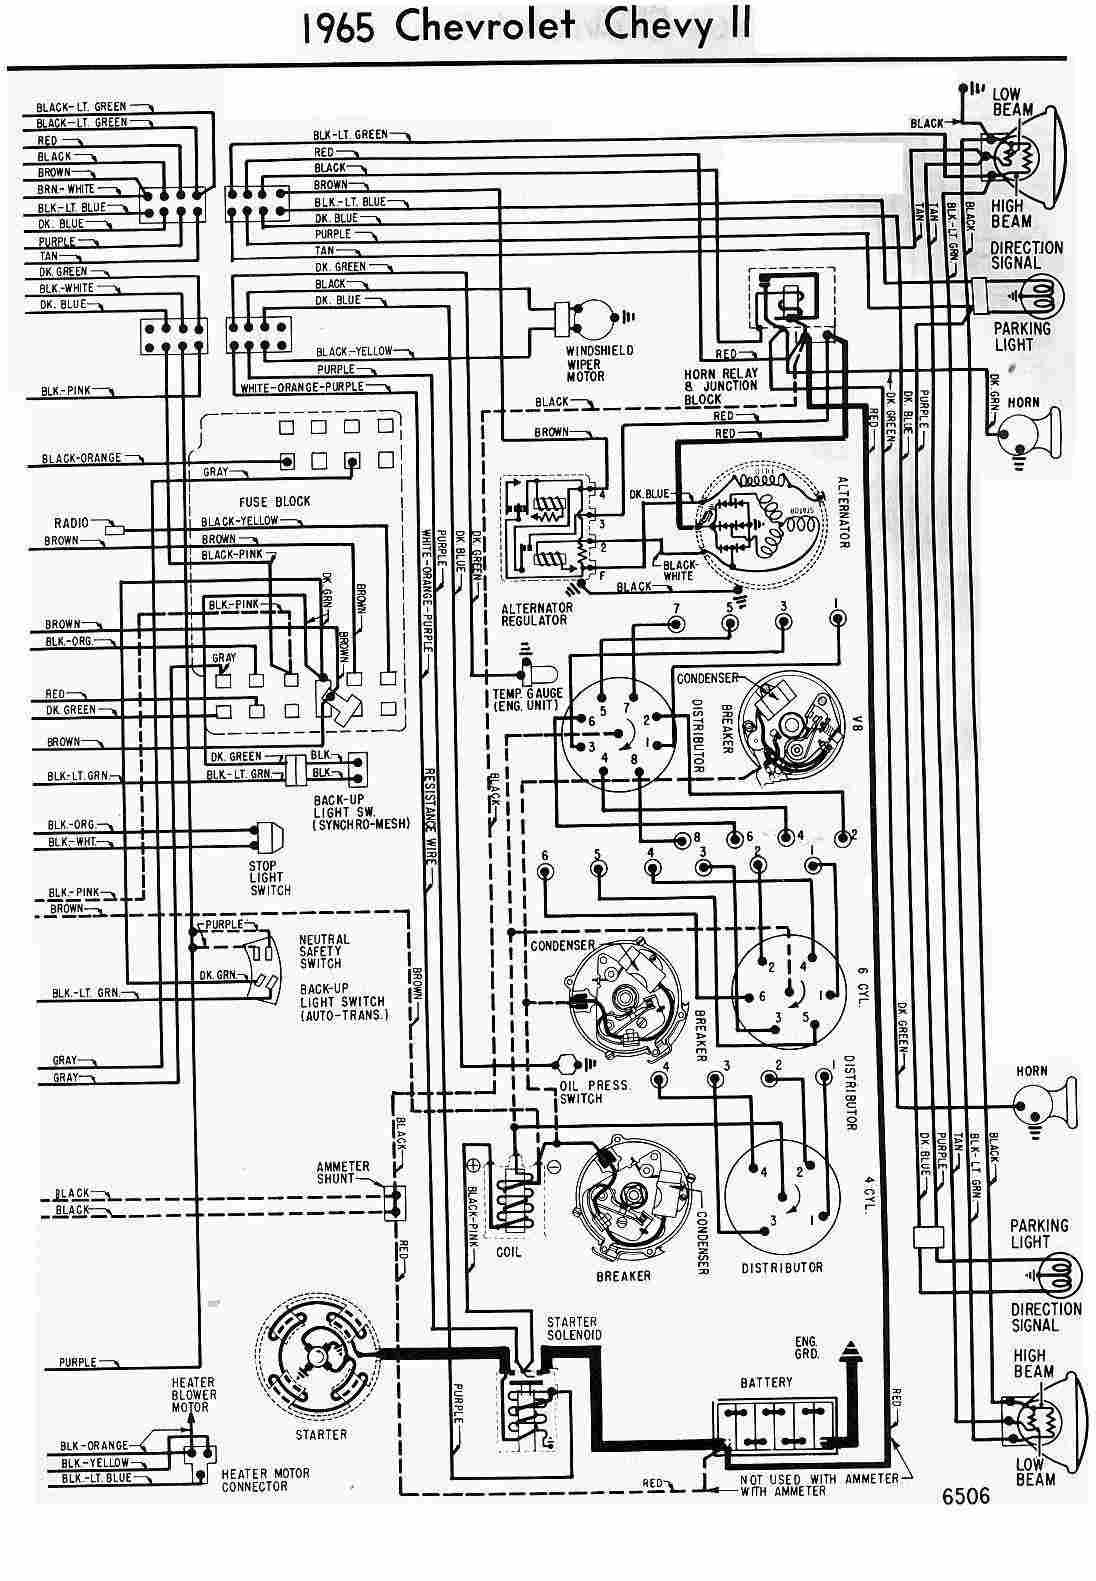 medium resolution of 1970 camaro wiring diagram as well chevy wiring diagrams scematic 1979 chevy camaro wiring diagram free 1979 camaro wiring diagrams